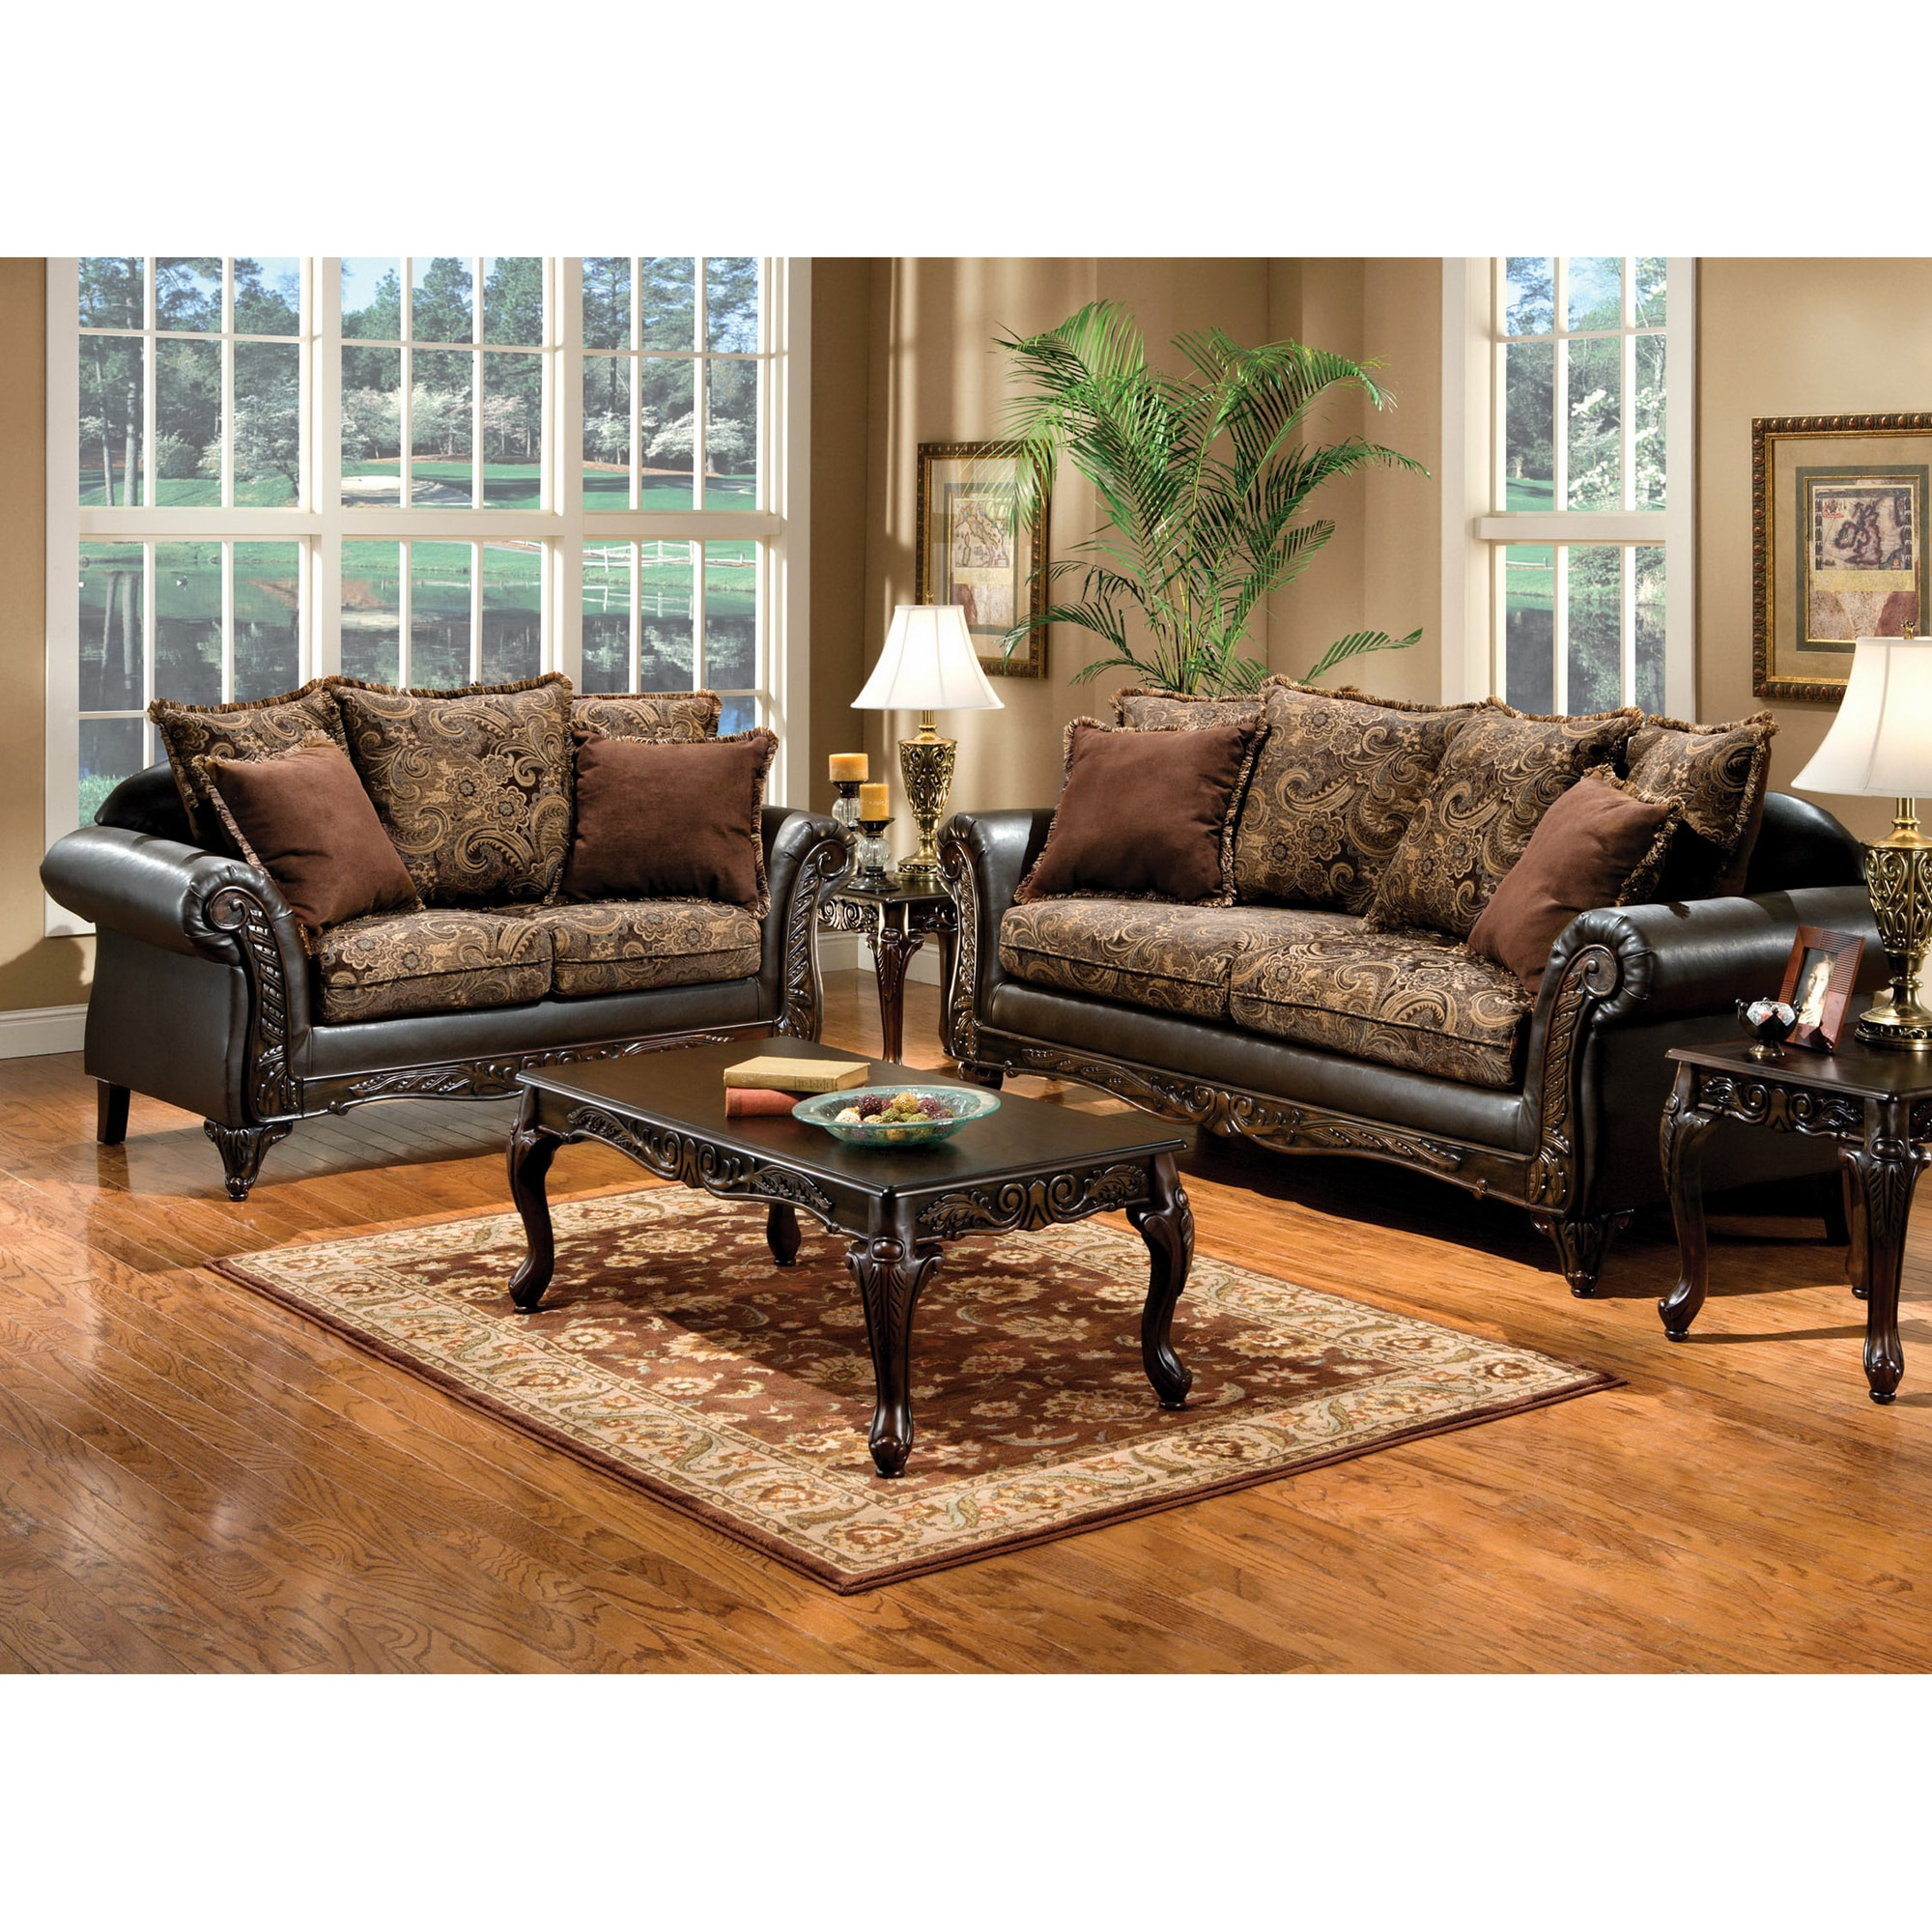 Furniture of america ruthy traditional dark brown floral for Dark brown living room set